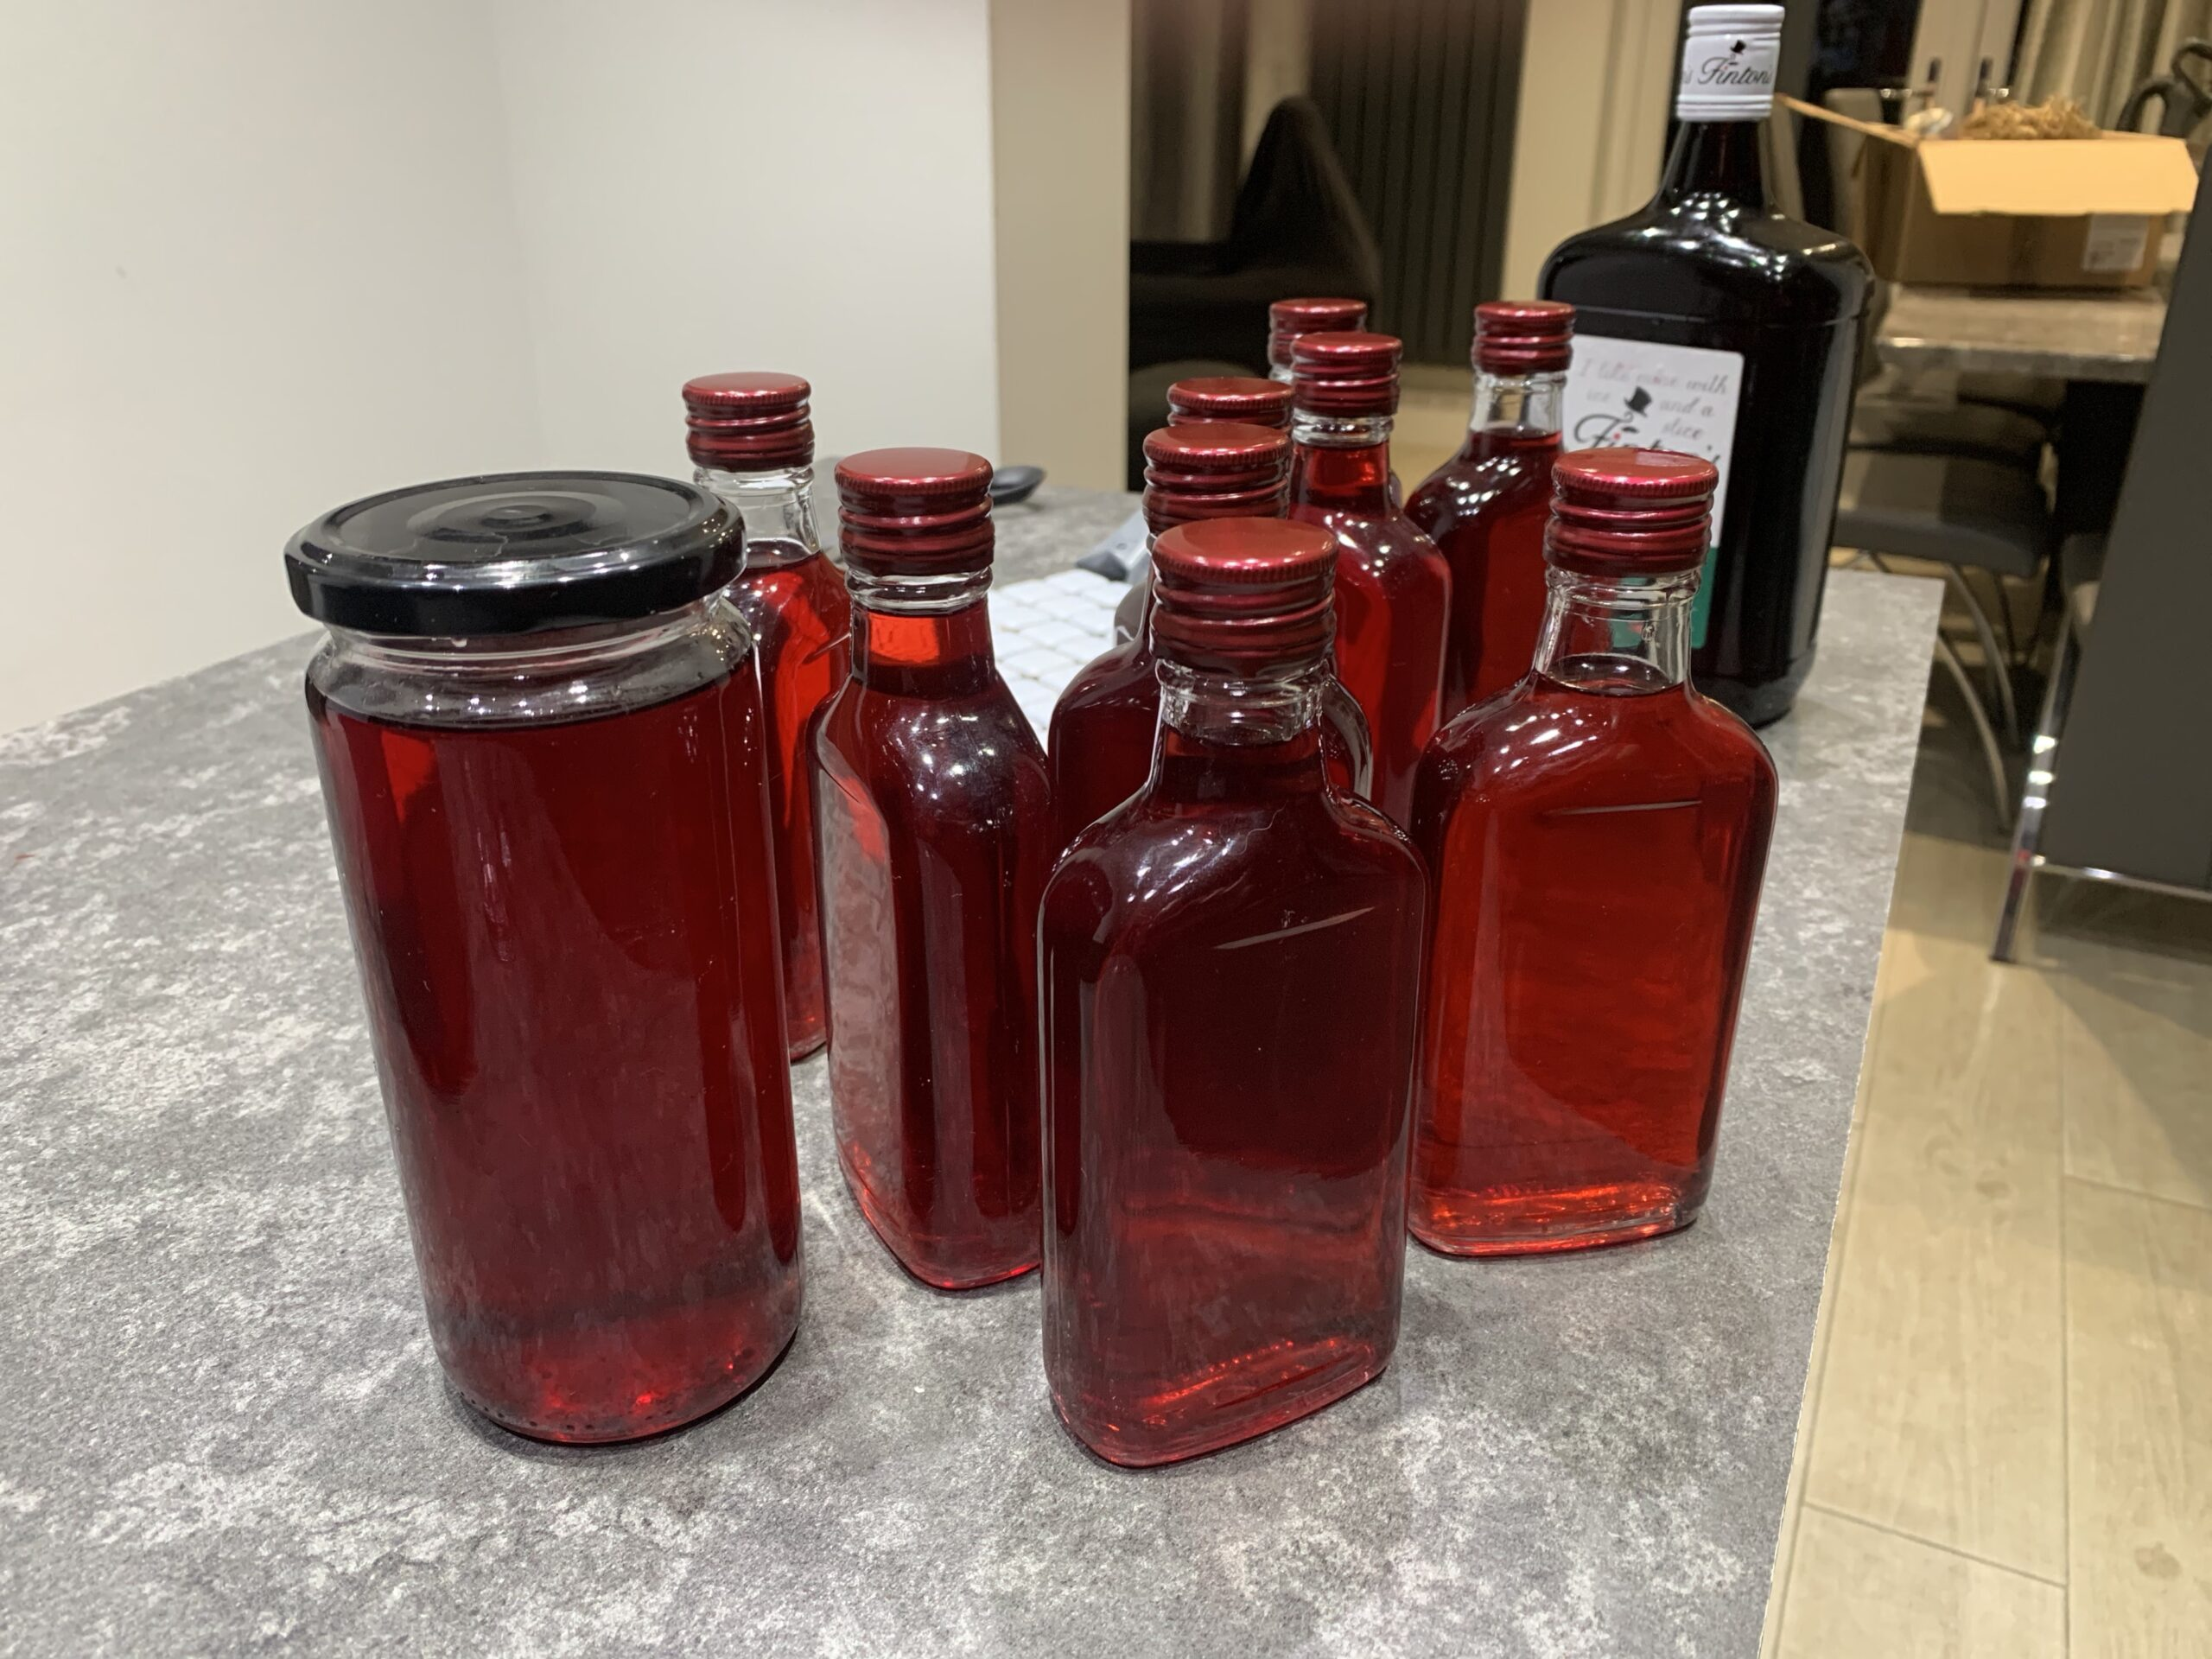 SLOE GIN COMPLETION